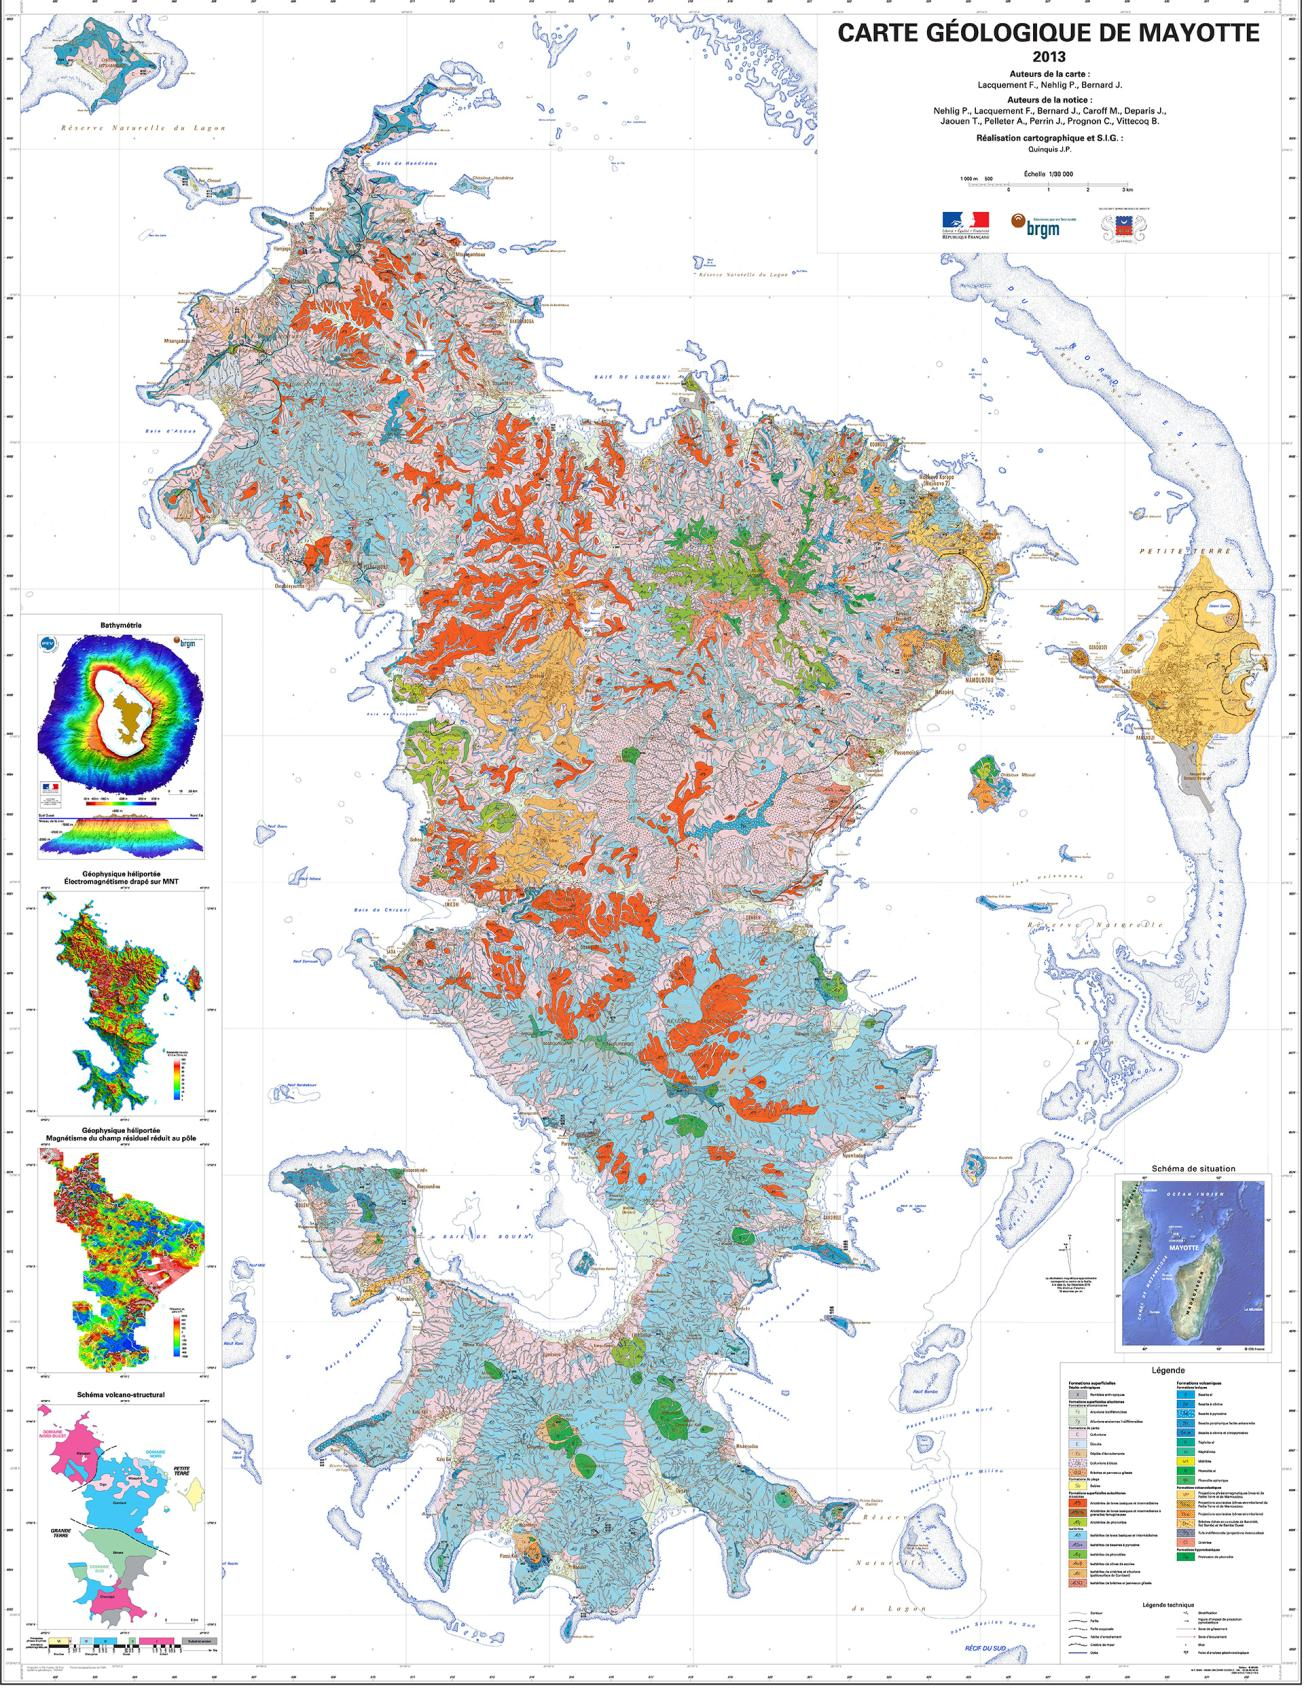 Geological map of Mayotte